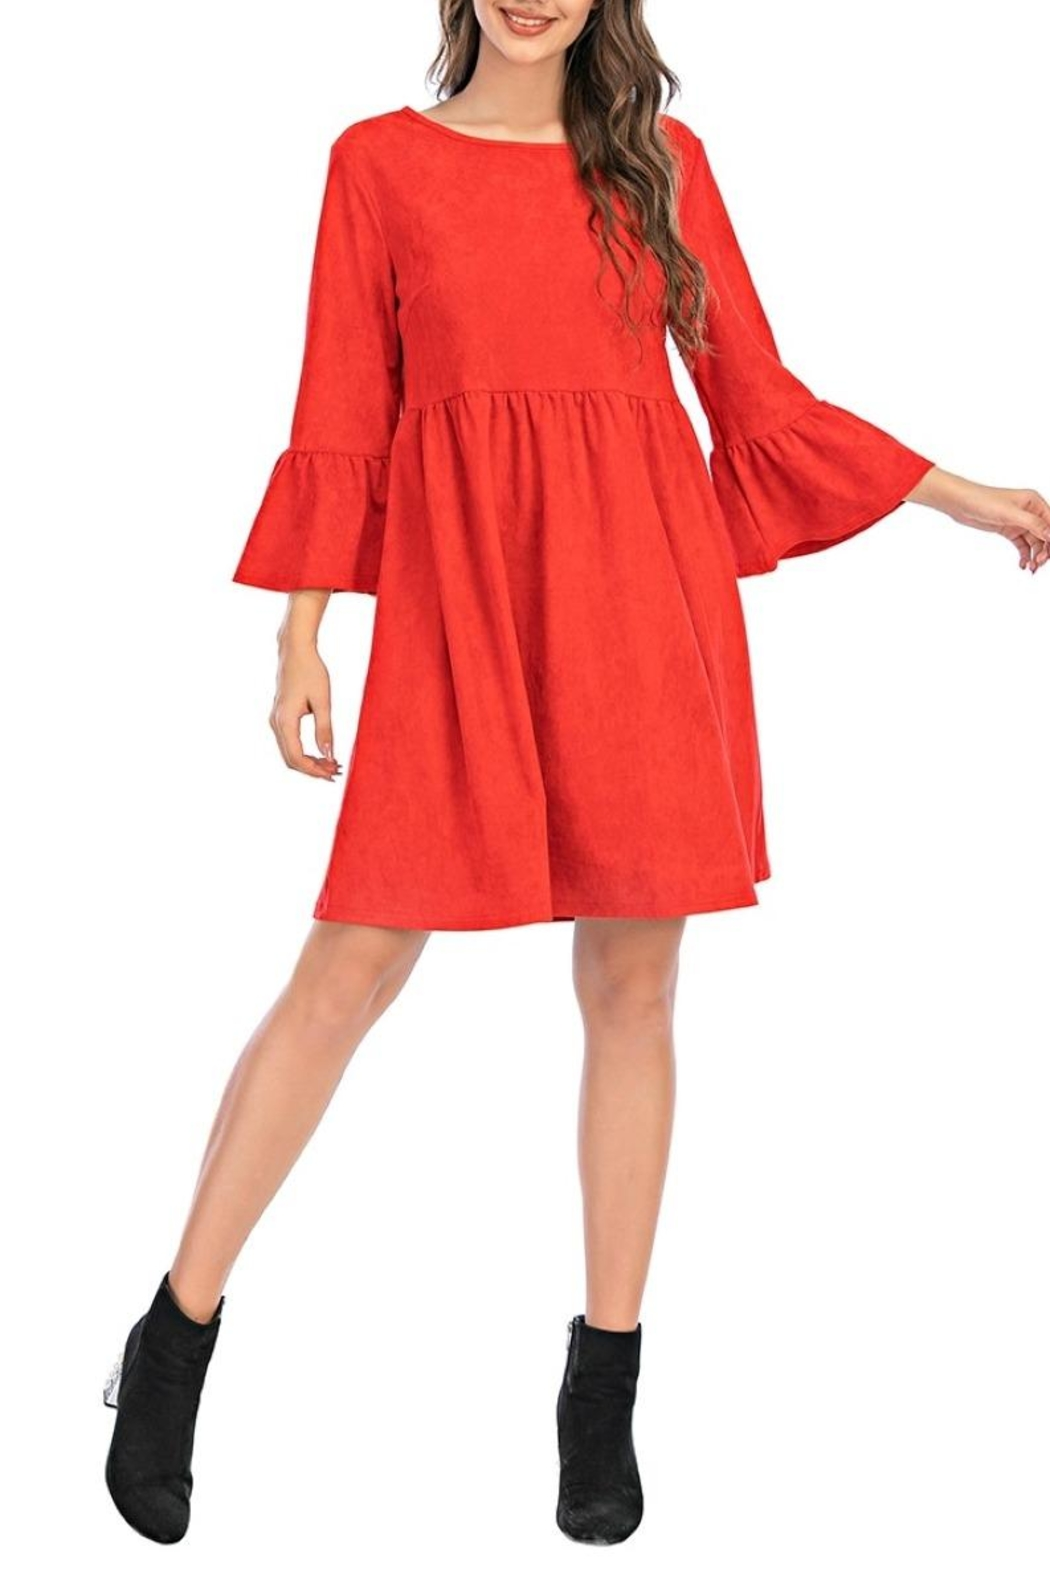 Aryeh Red Bell Sleeve Dress - Main Image